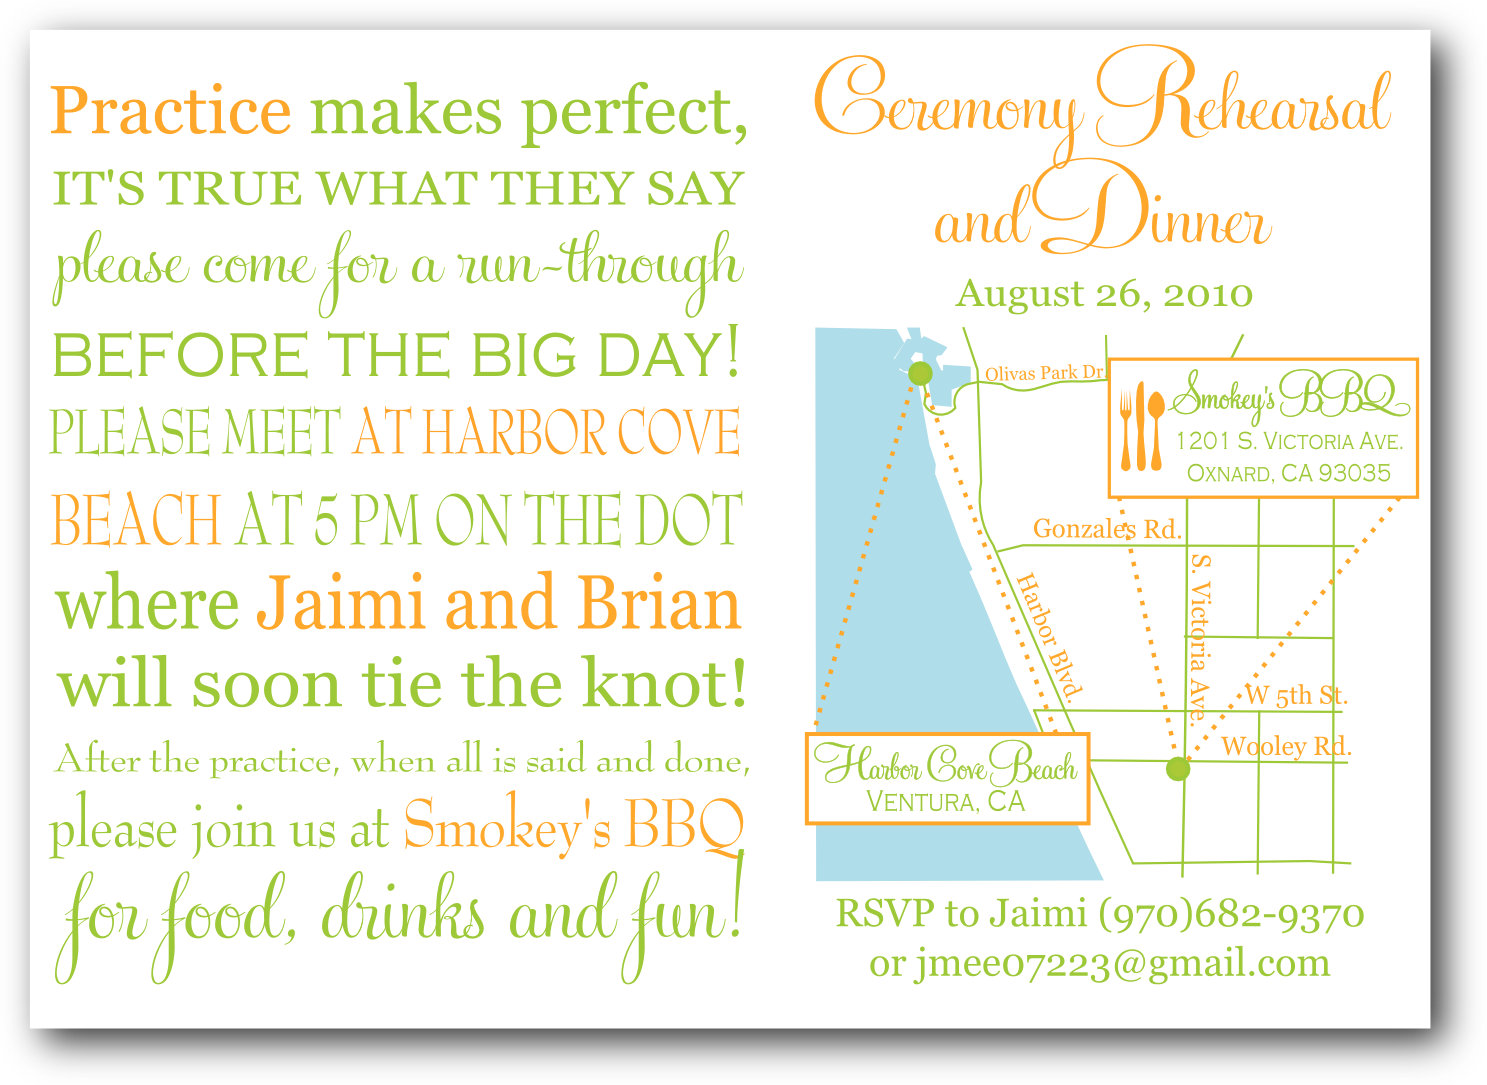 Creative rehearsal dinner invitation wording unique rehearsal dinner invitation wording 1487 x 1085 stopboris Image collections